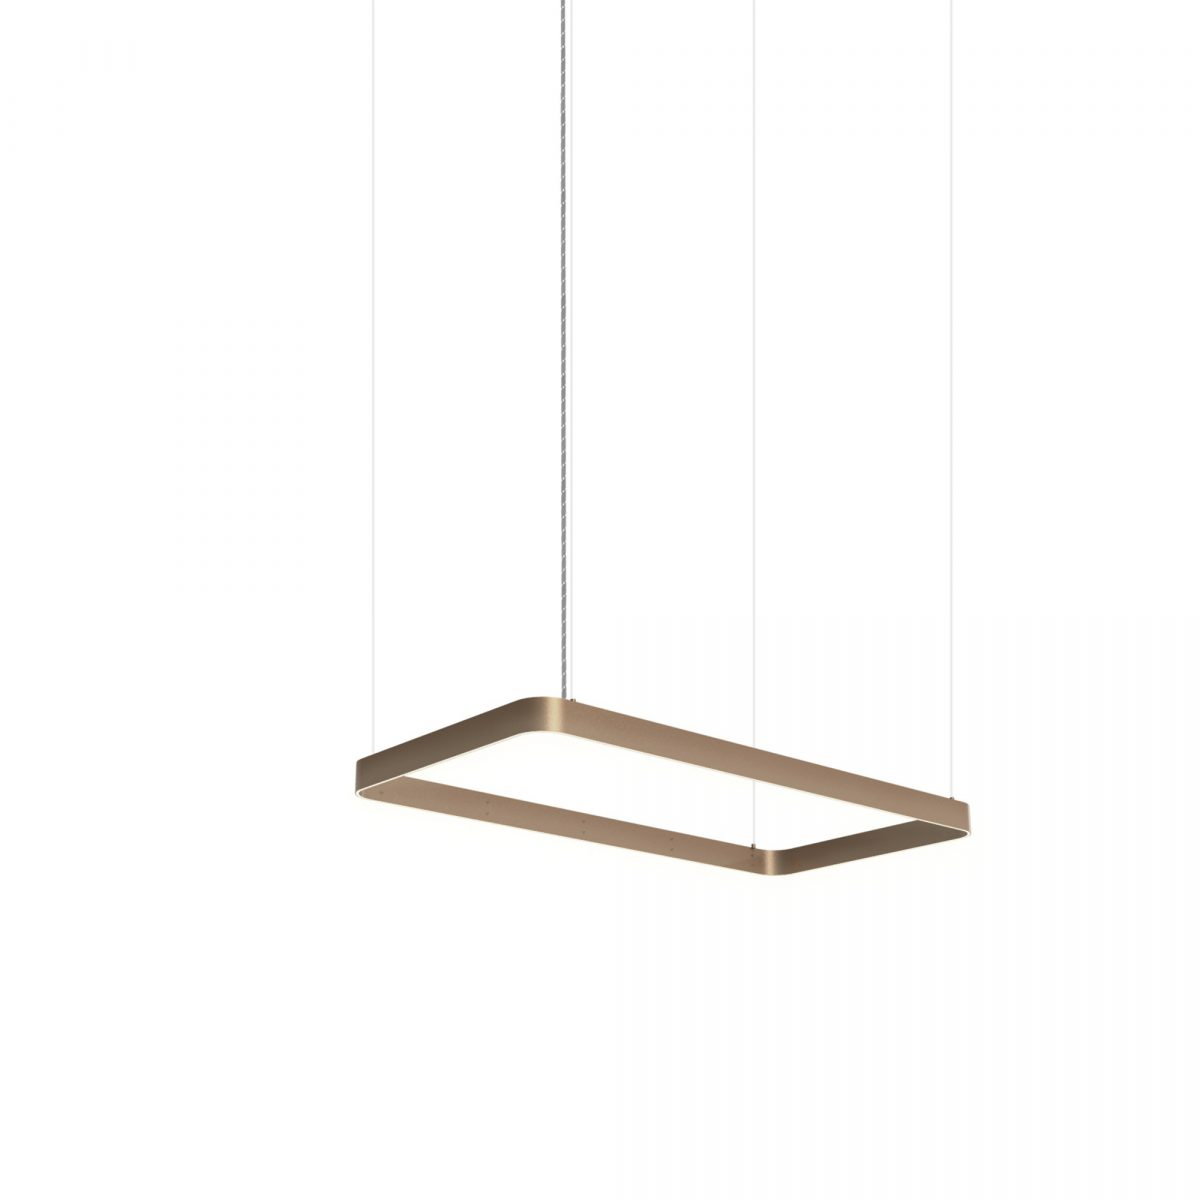 JSPR Eden 50×100 Bronze Rectangle